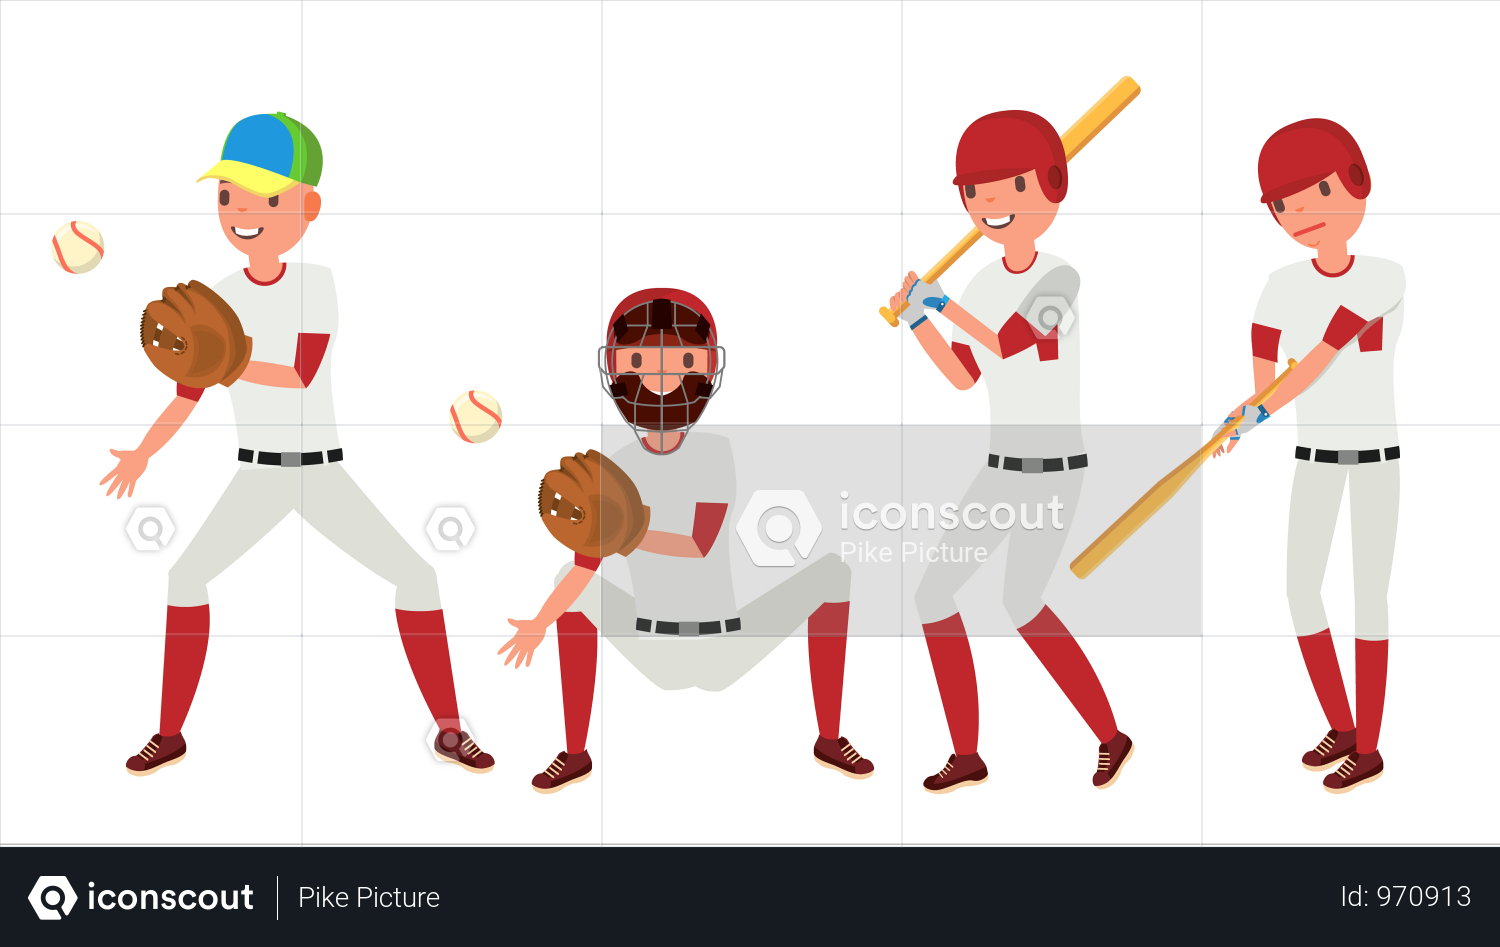 Premium Classic Baseball Player Illustration Download In Png Vector Format In 2020 Baseball Players Players Sport Illustration